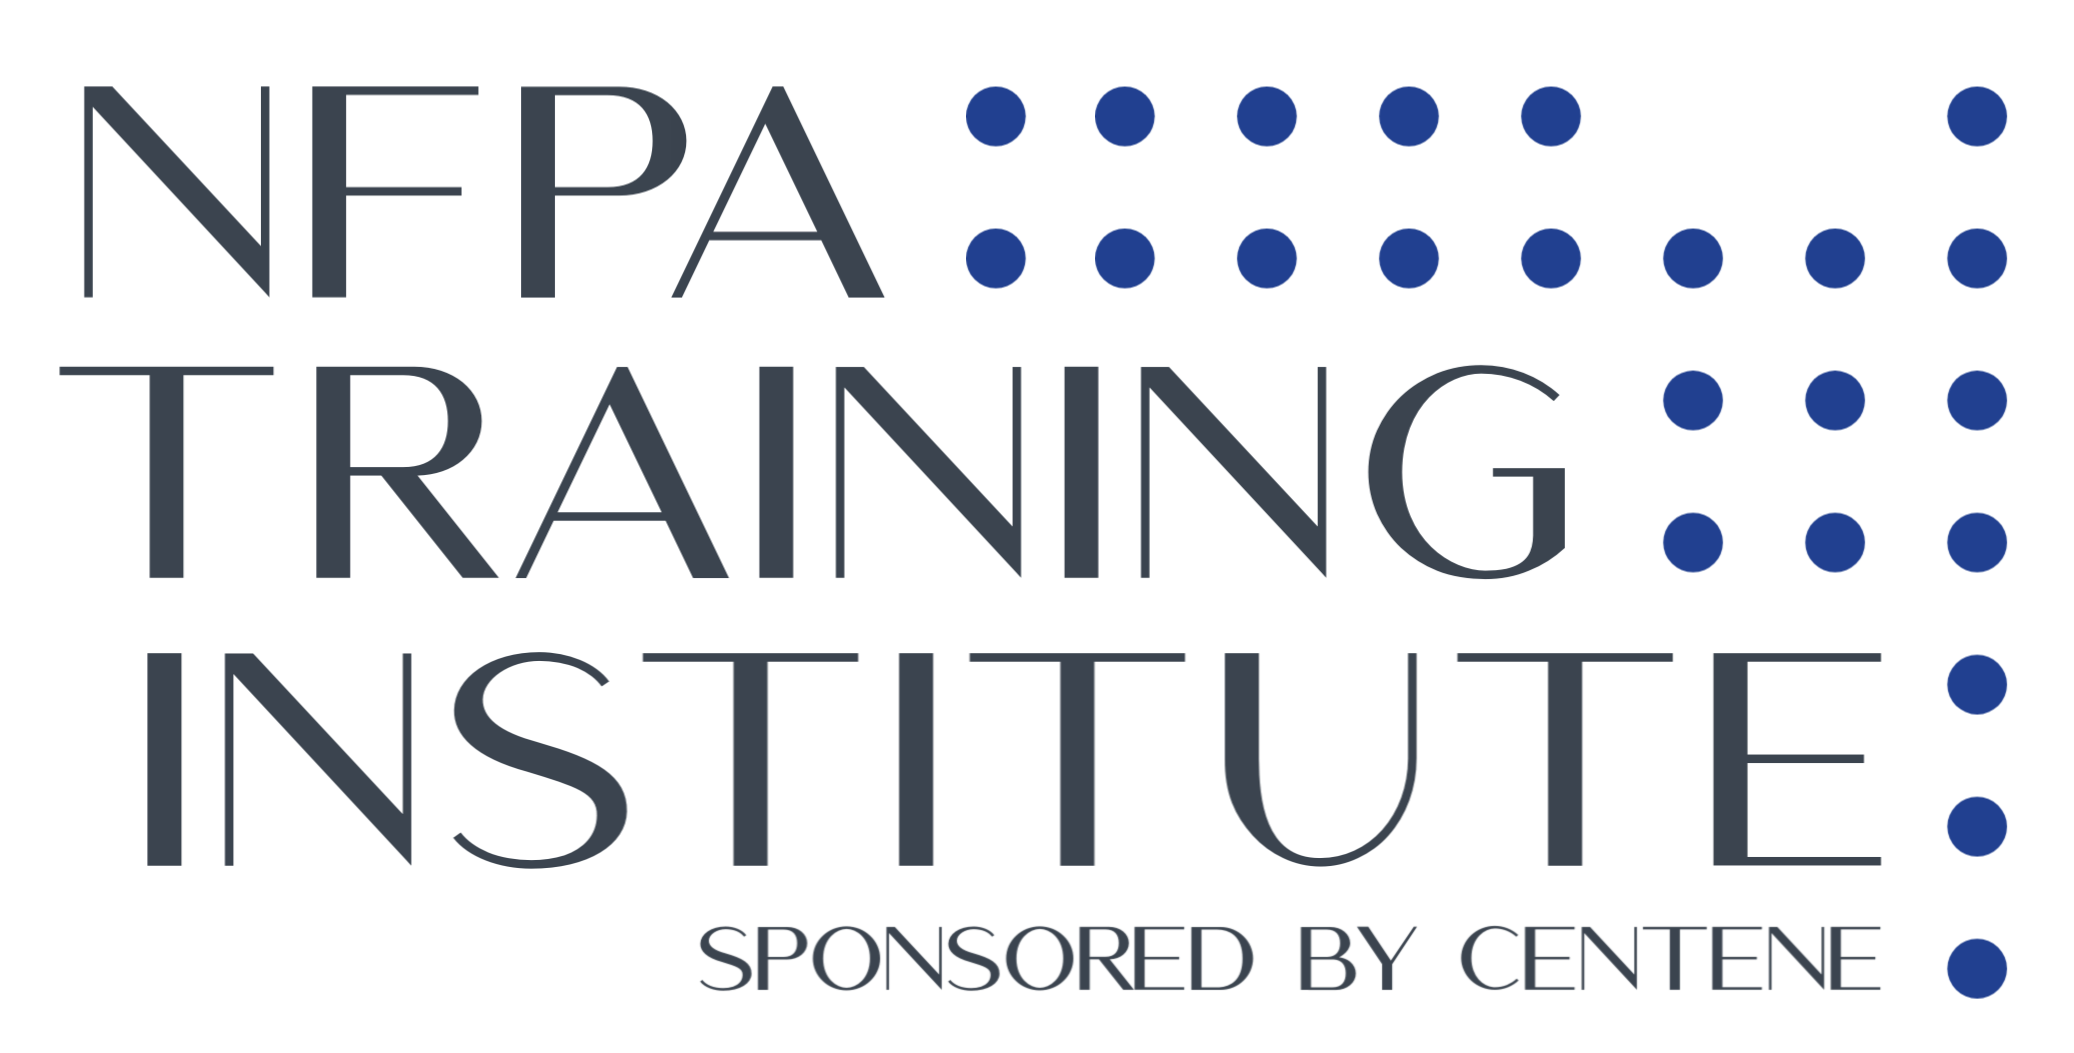 NFPA Training Institute